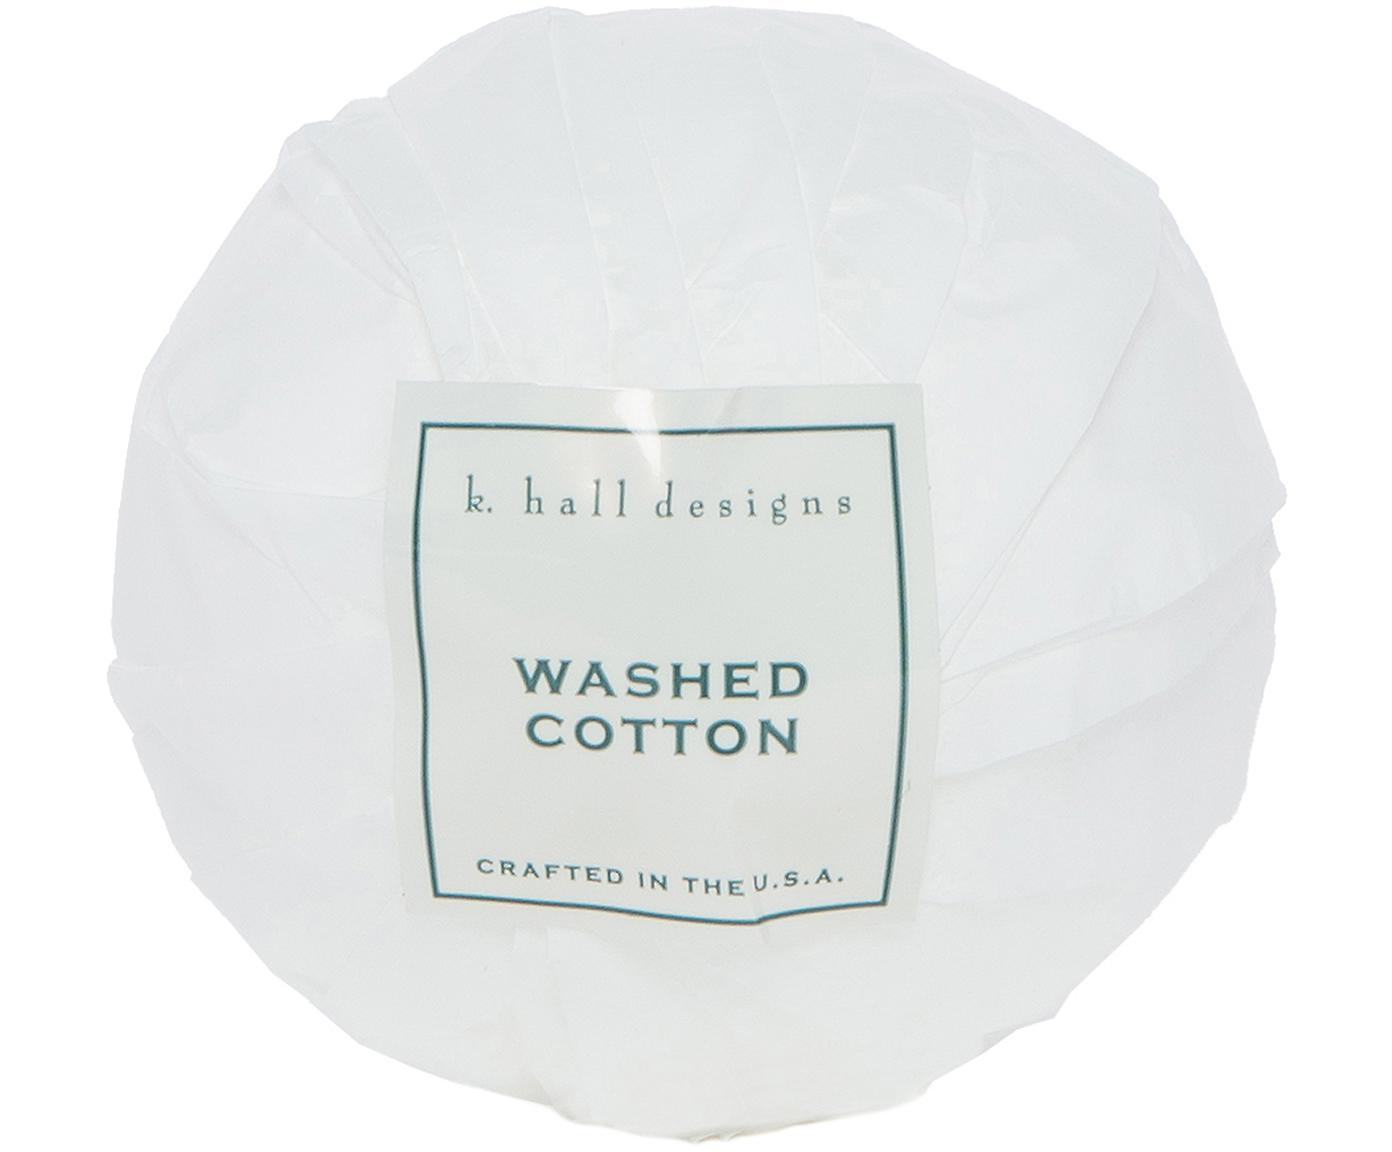 Badbruisbal Washed Cotton (lavendel & kamille), Wit, Ø 7 x H 7 cm